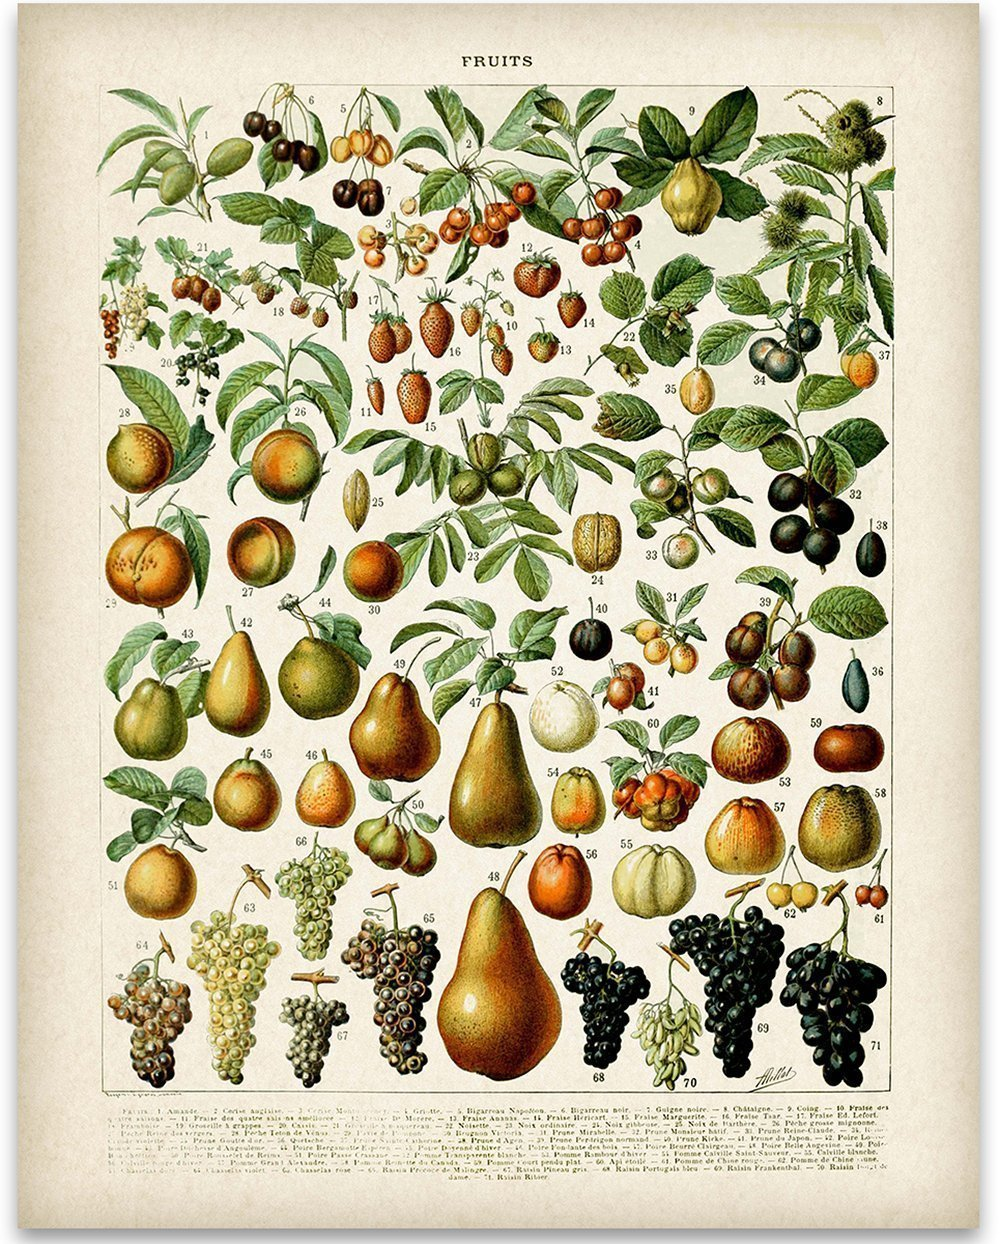 Fruits Botanical in French Art Print - 11x14 Unframed Art Print - Great Wall Decor for Your Kitchen by Personalized Signs by Lone Star Art